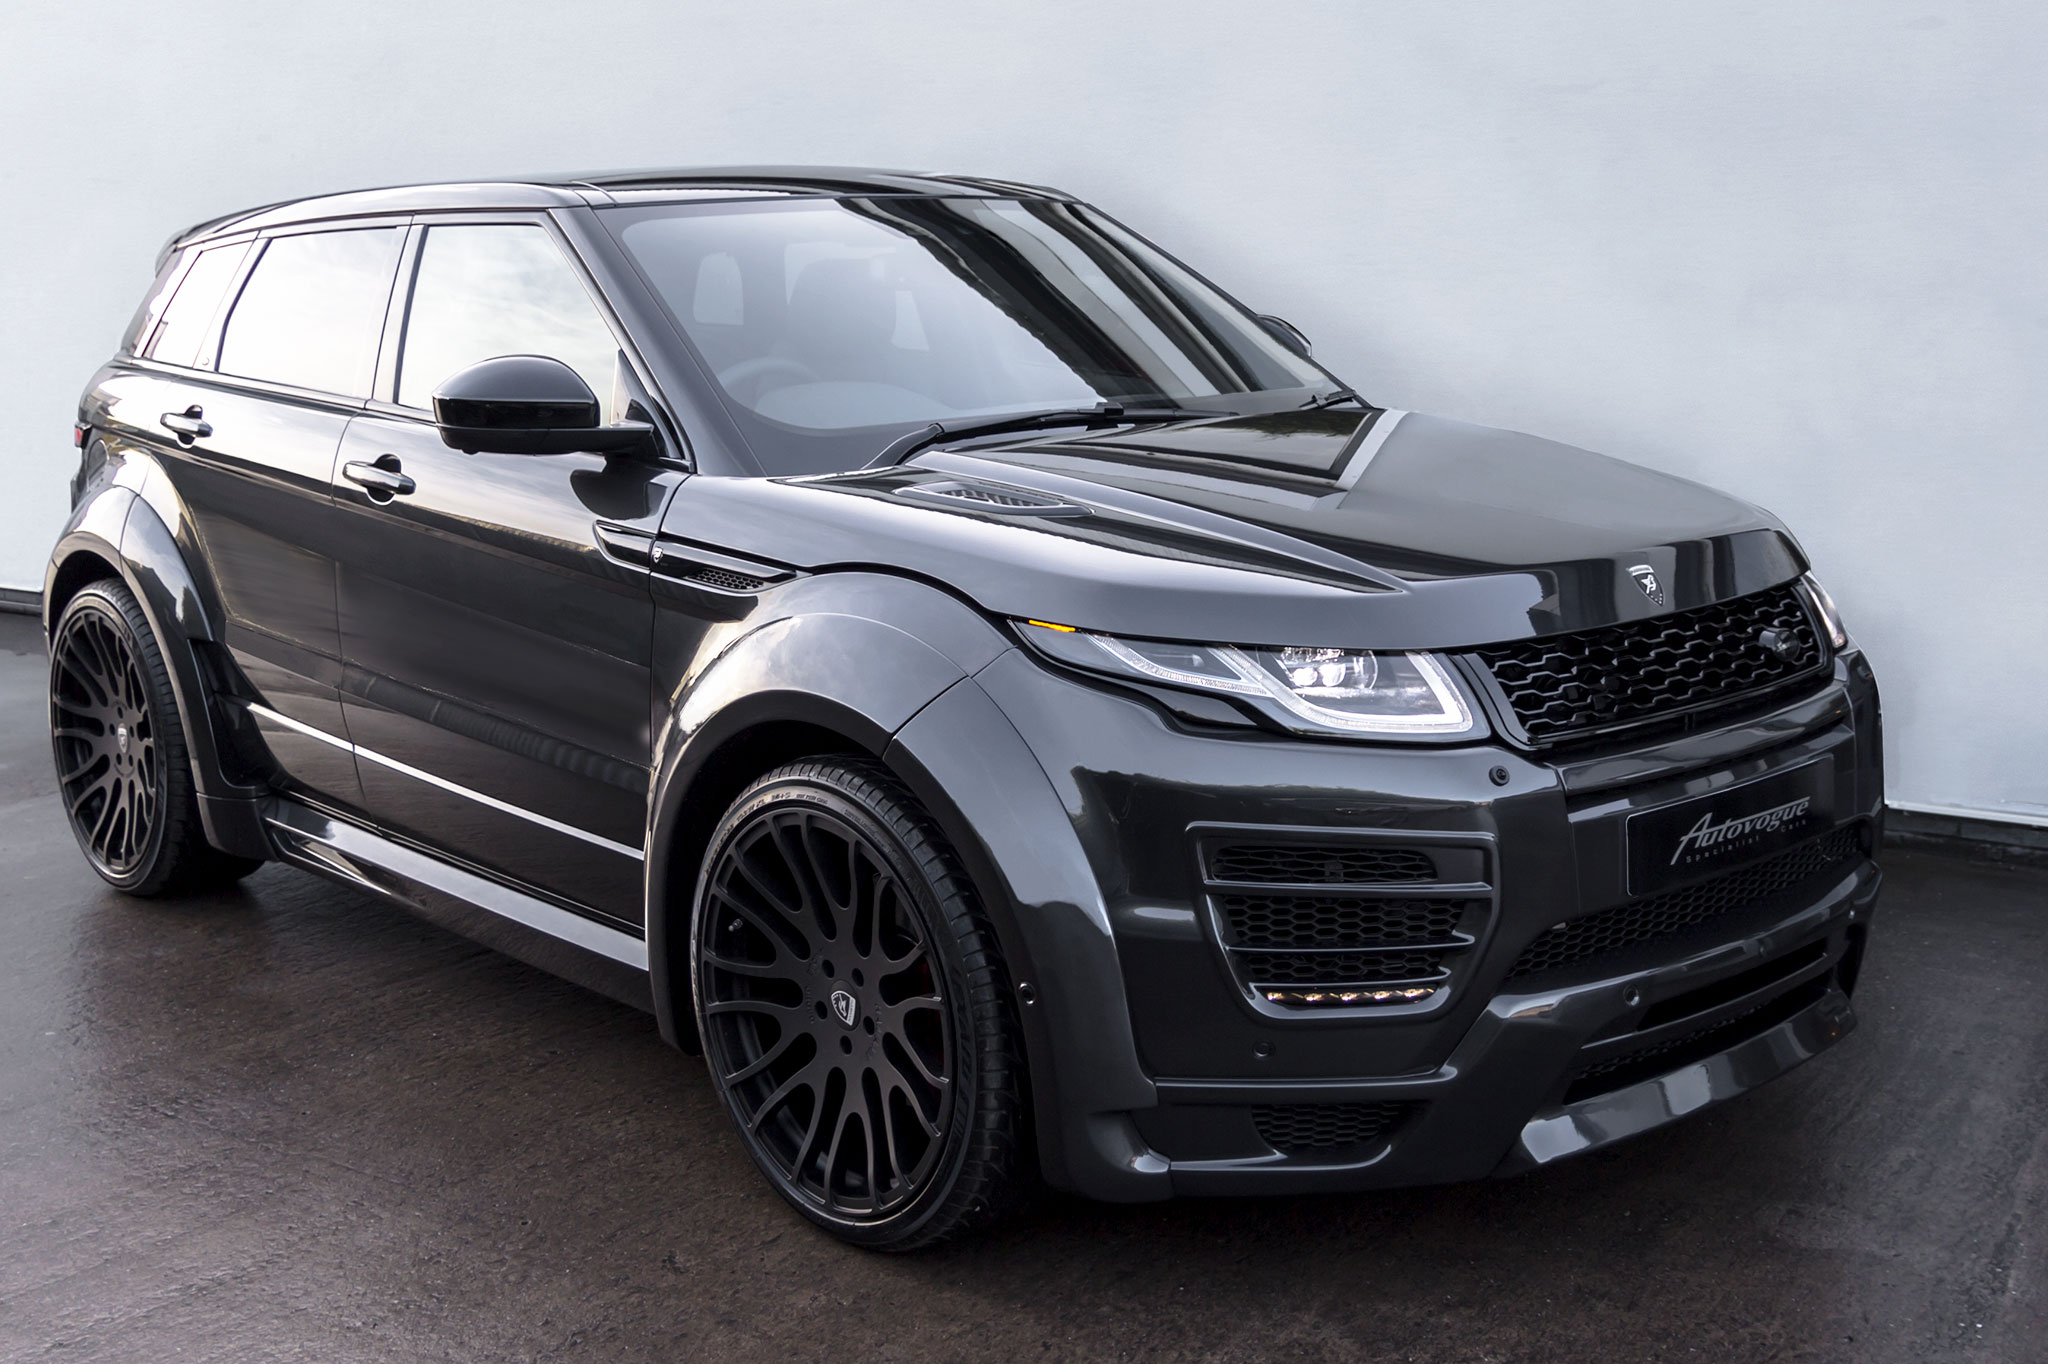 Alarm System Hamann Range Rover Evoque 5 Door Widebody